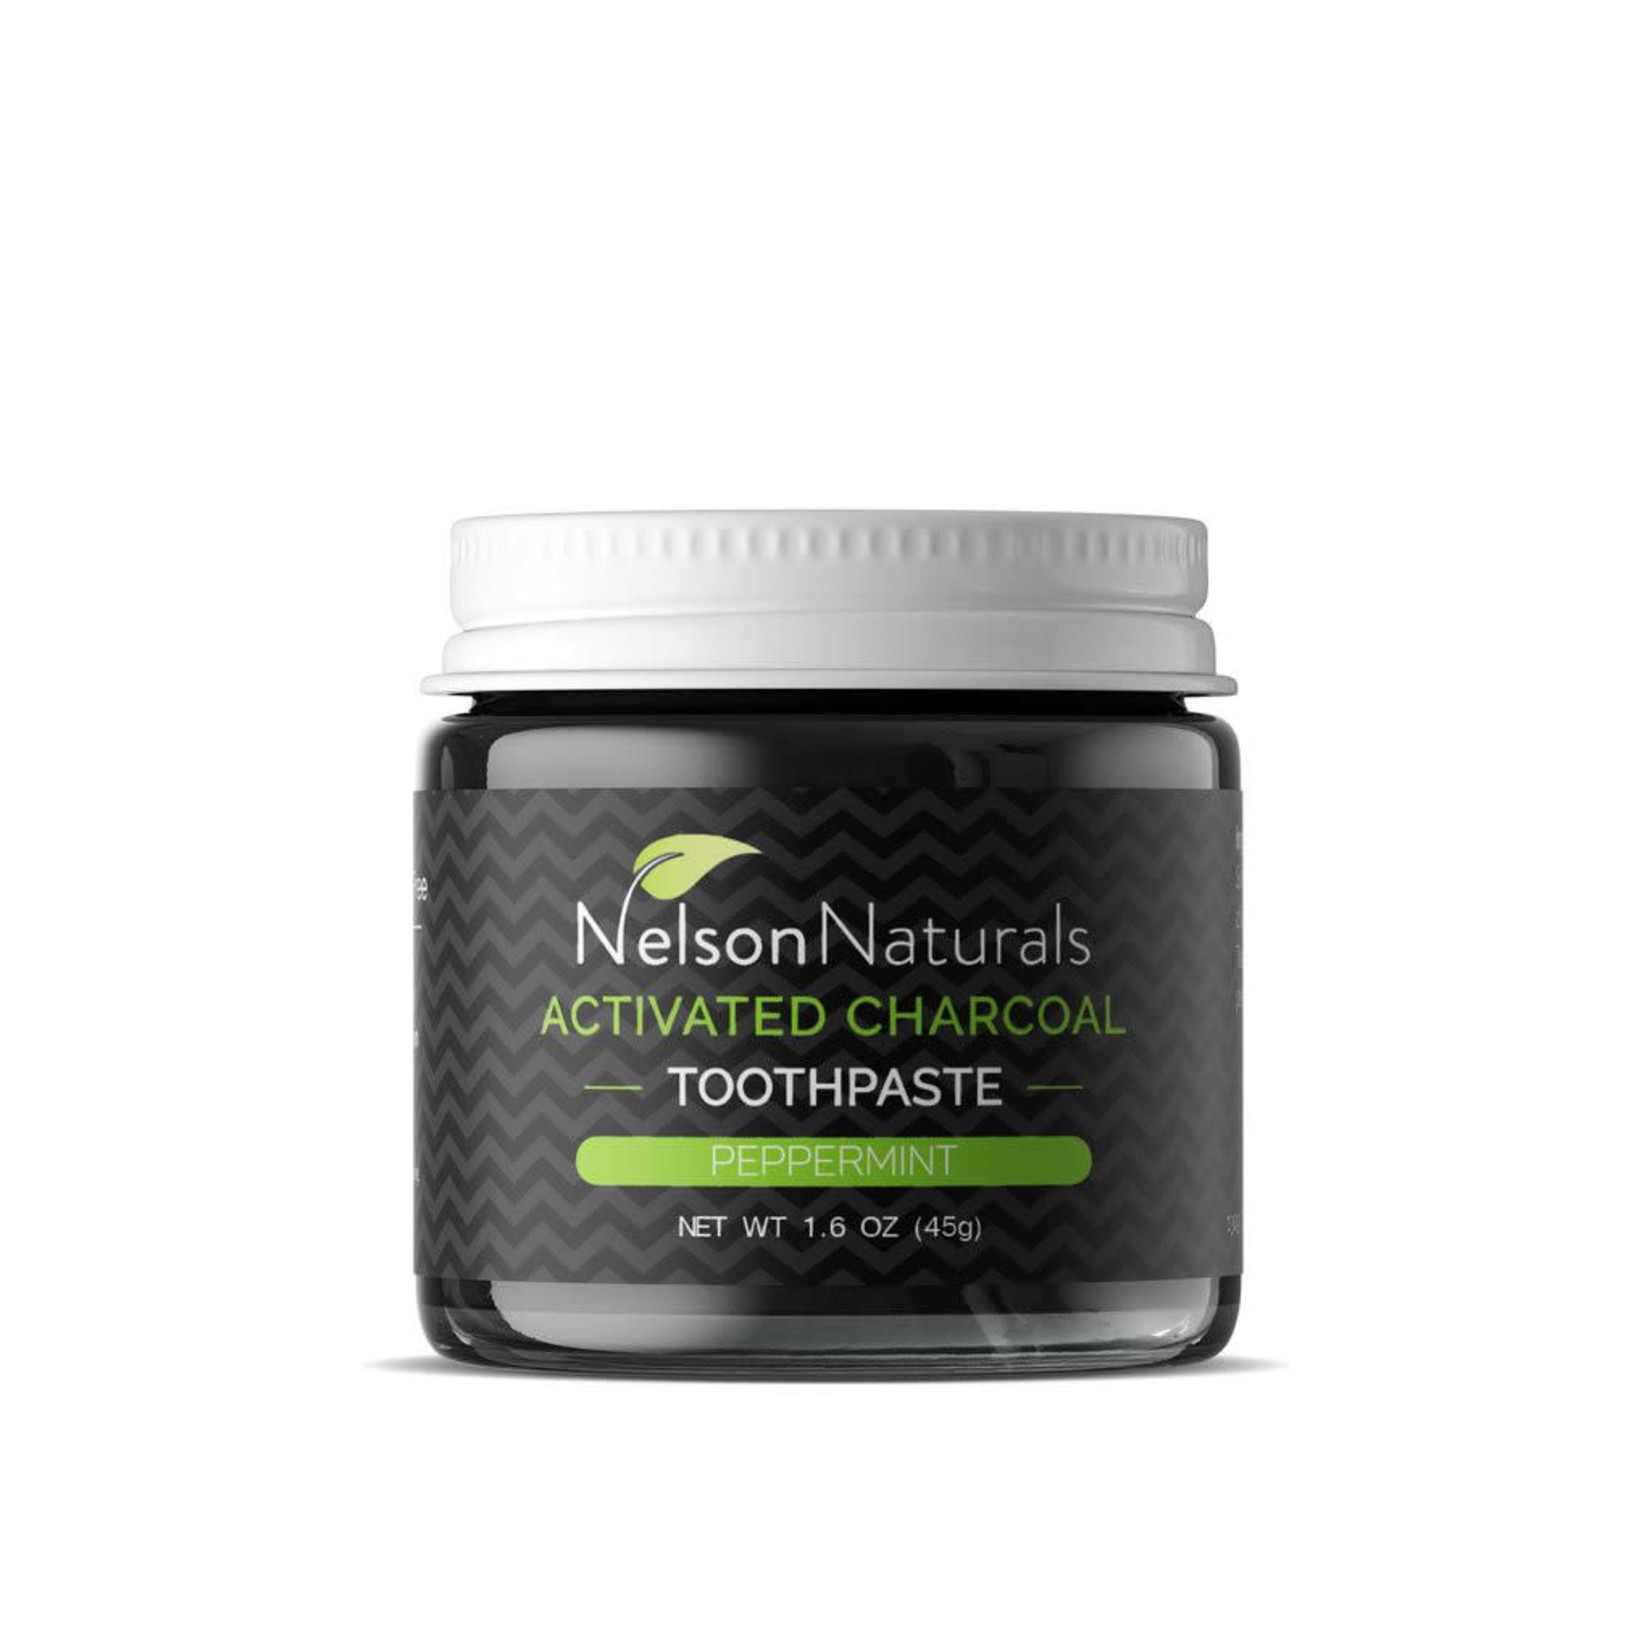 NELSON NATURALS TOOTHPASTE JAR - ACTIVATED CHARCOAL PEPPERMINT